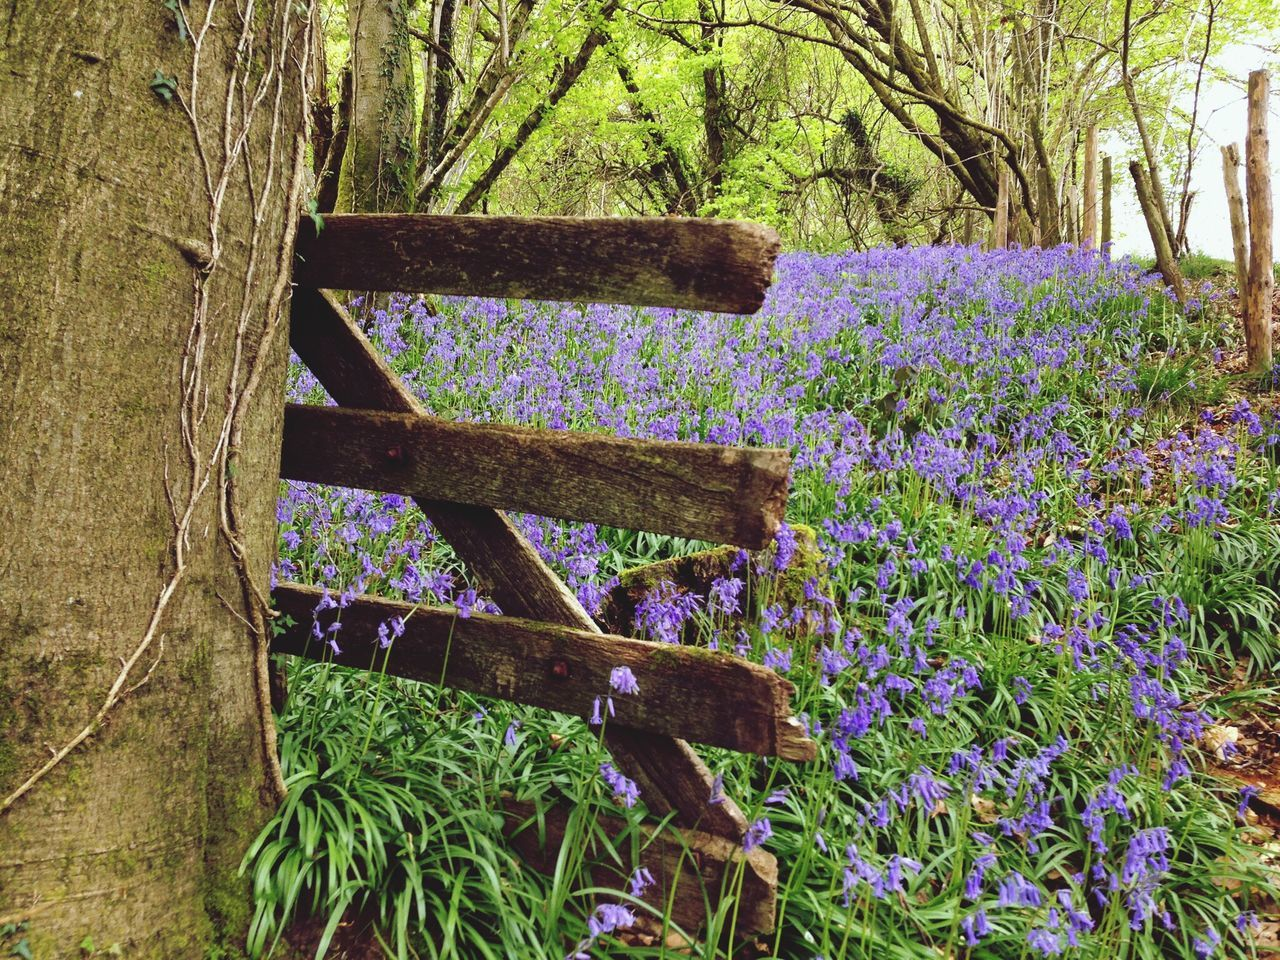 Nature Growth Beauty In Nature No People Flower Plant Tree Freshness Wood - Material Day Outdoors Fragility Forest Close-up Bluebell Wood Bluebells Gate Wooden Gate Woodland Walk Wales